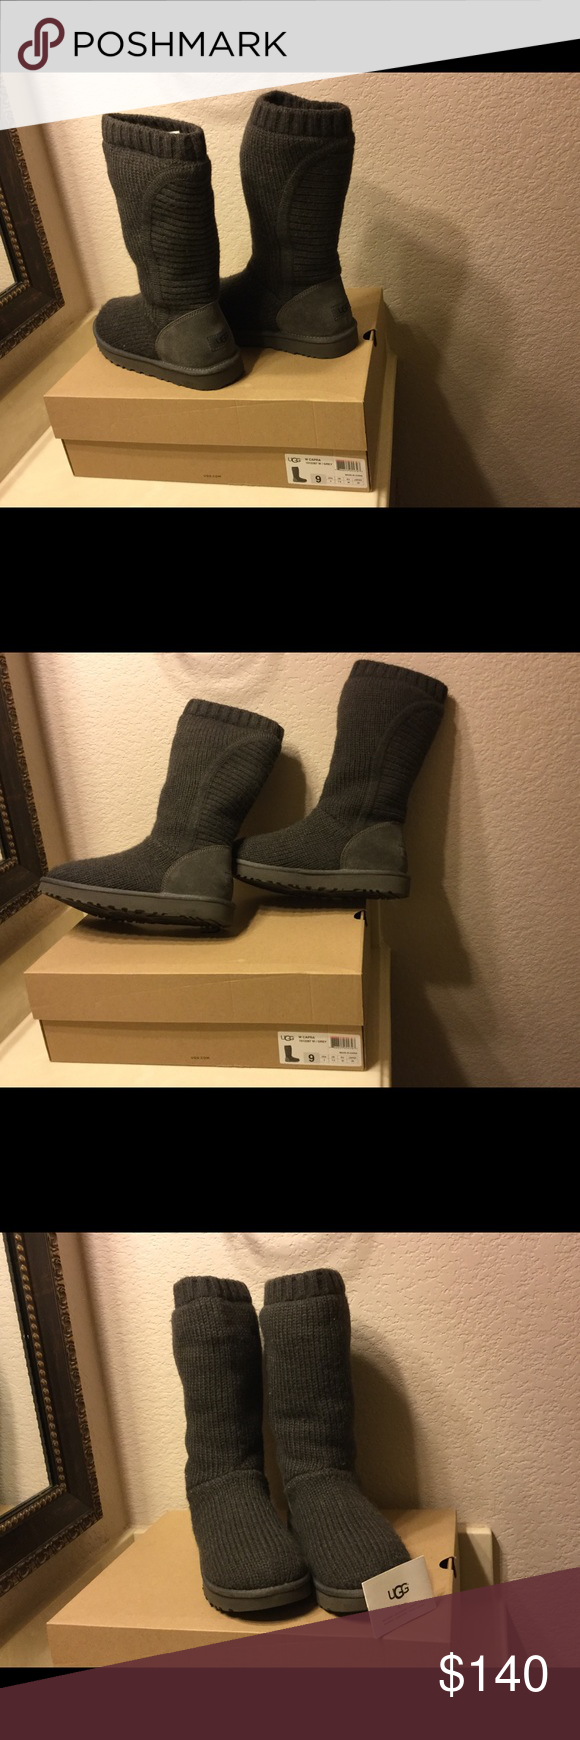 e88a4ec2155 Authentic UGG W CAPRA Women Boots  UGG Capra Classic Tall Boot Grey. This  style